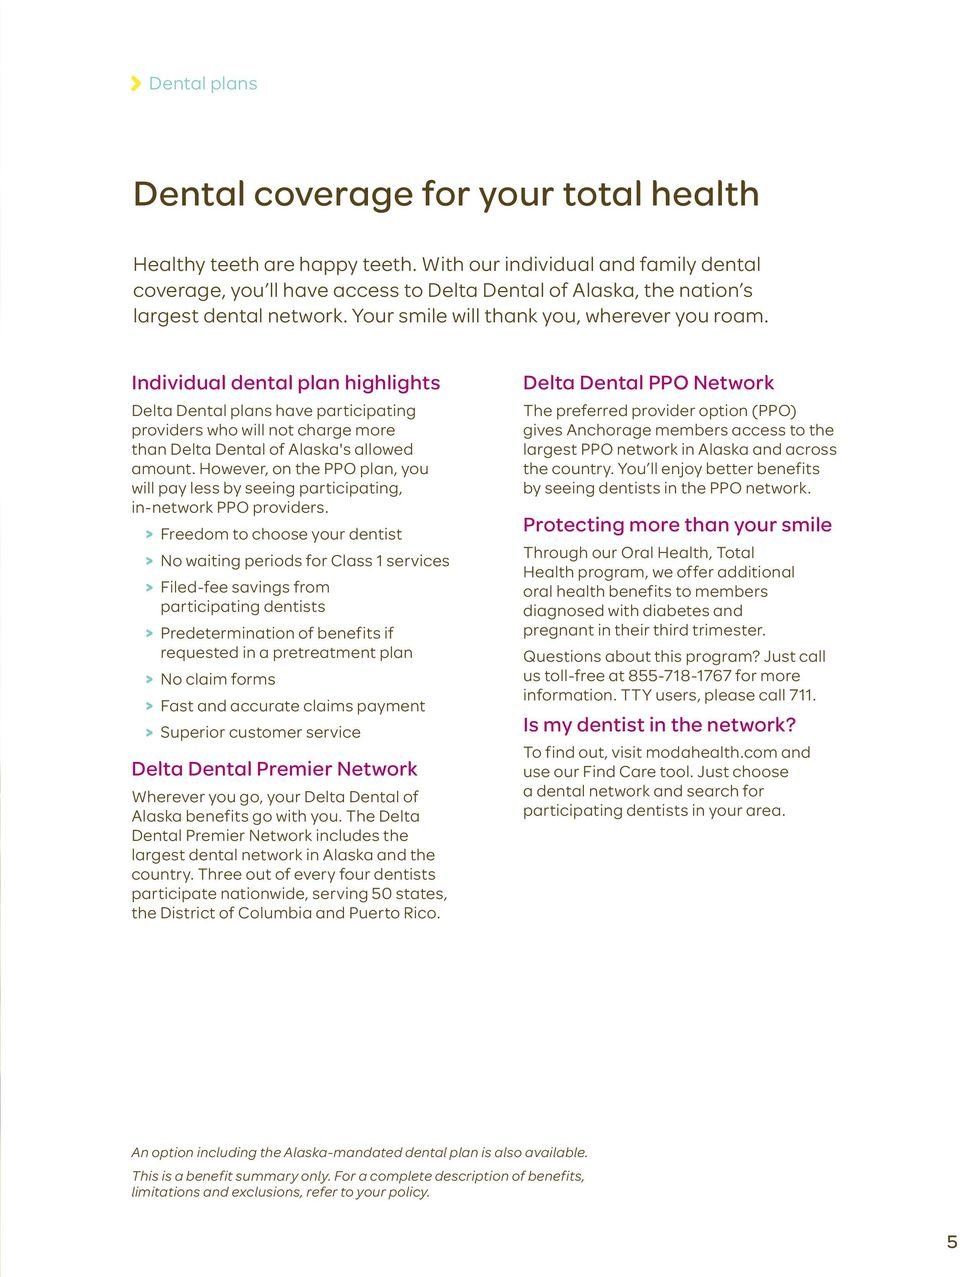 Individual dental plan highlights Delta Dental plans have participating providers who will not charge more than Delta Dental of Alaska's allowed amount.